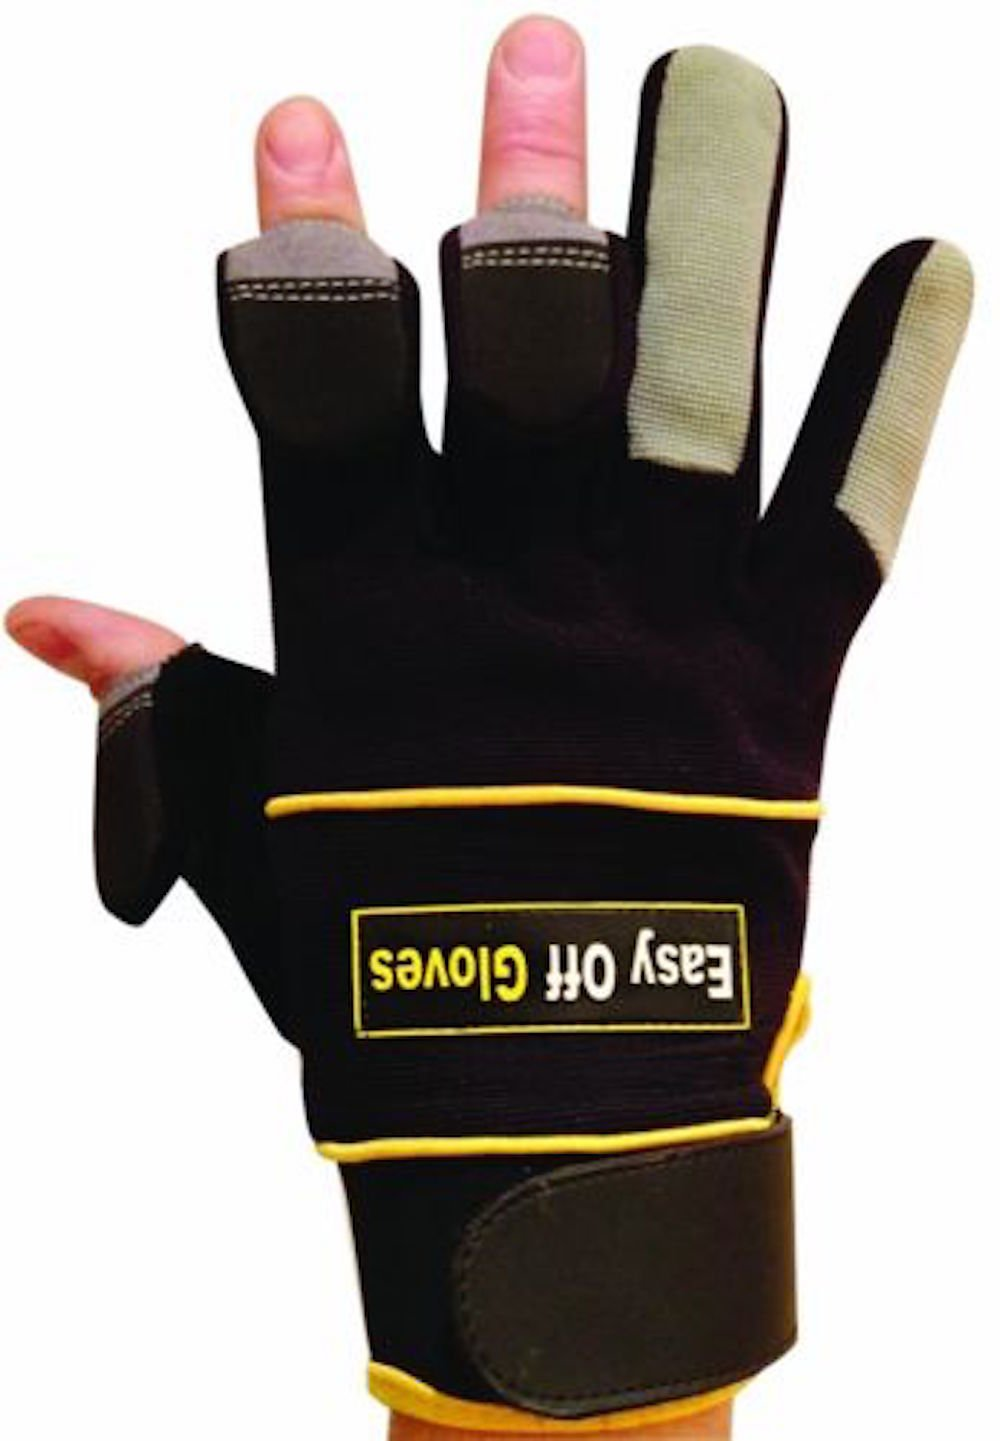 Specialist (Fold-Back Finger Tips) Velcro Gloves by Easy Off Gloves - As seen in The Daily Mirror, The Sun & as worn by Iwan Thomas MBE - Ideal for Shooting, Fishing, Gardening, Photography, DIY & Work Wear Easy Off Gloves Ltd